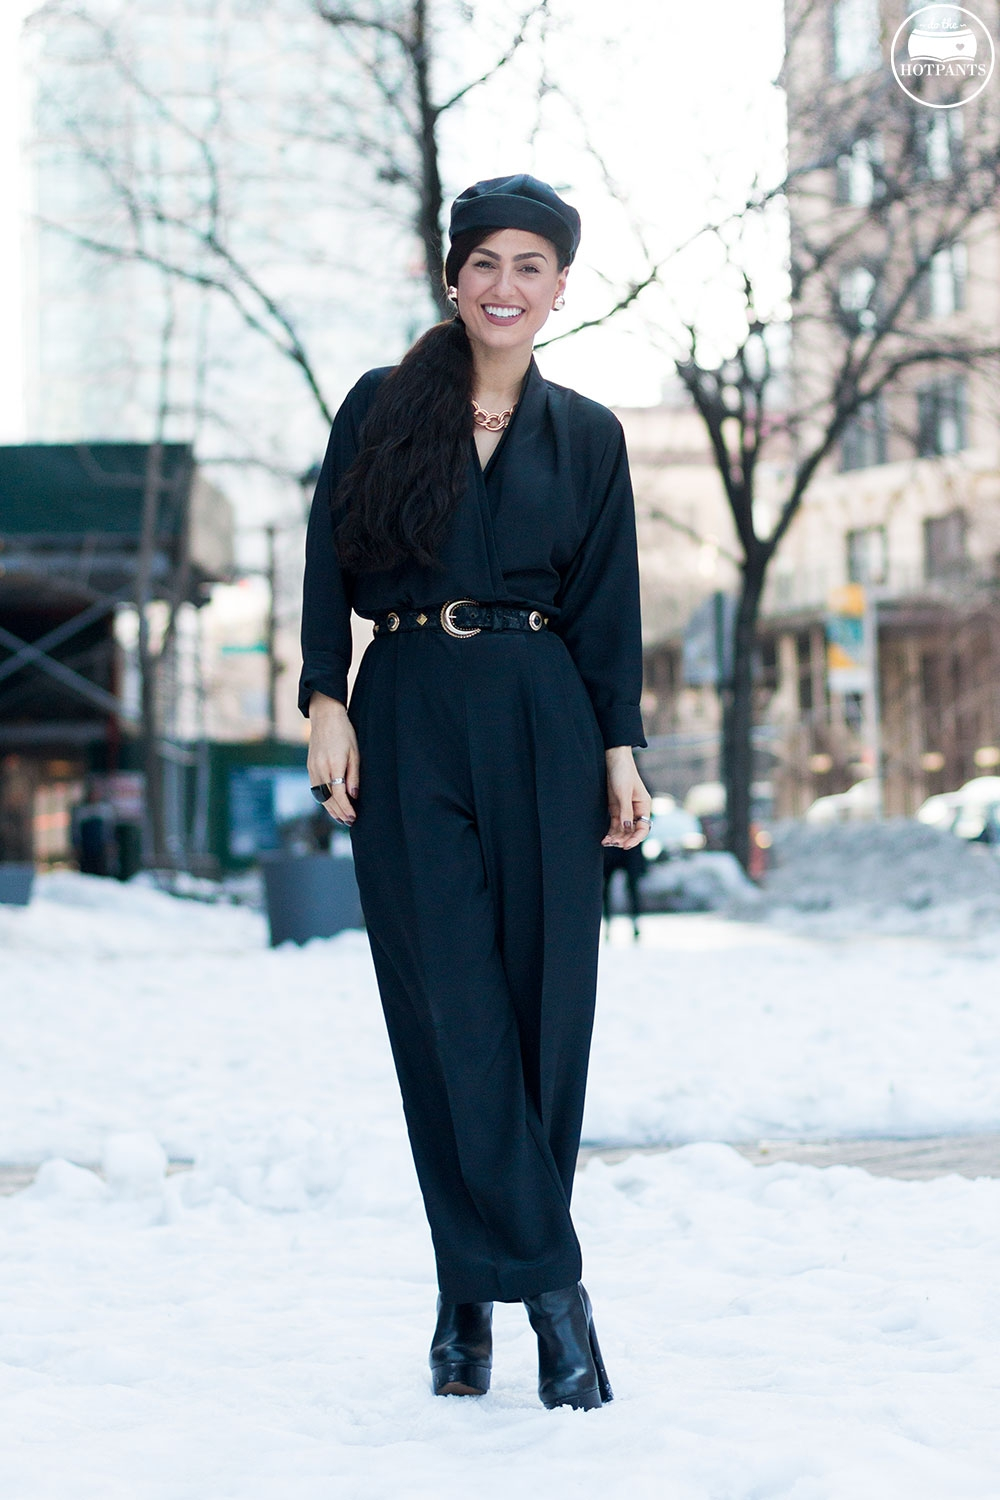 Do The Hotpants Dana Suchow Black Goth Jumpsuit Side Ponytail Leather Hat Winter Fashion Woman in Snow IMG_6343